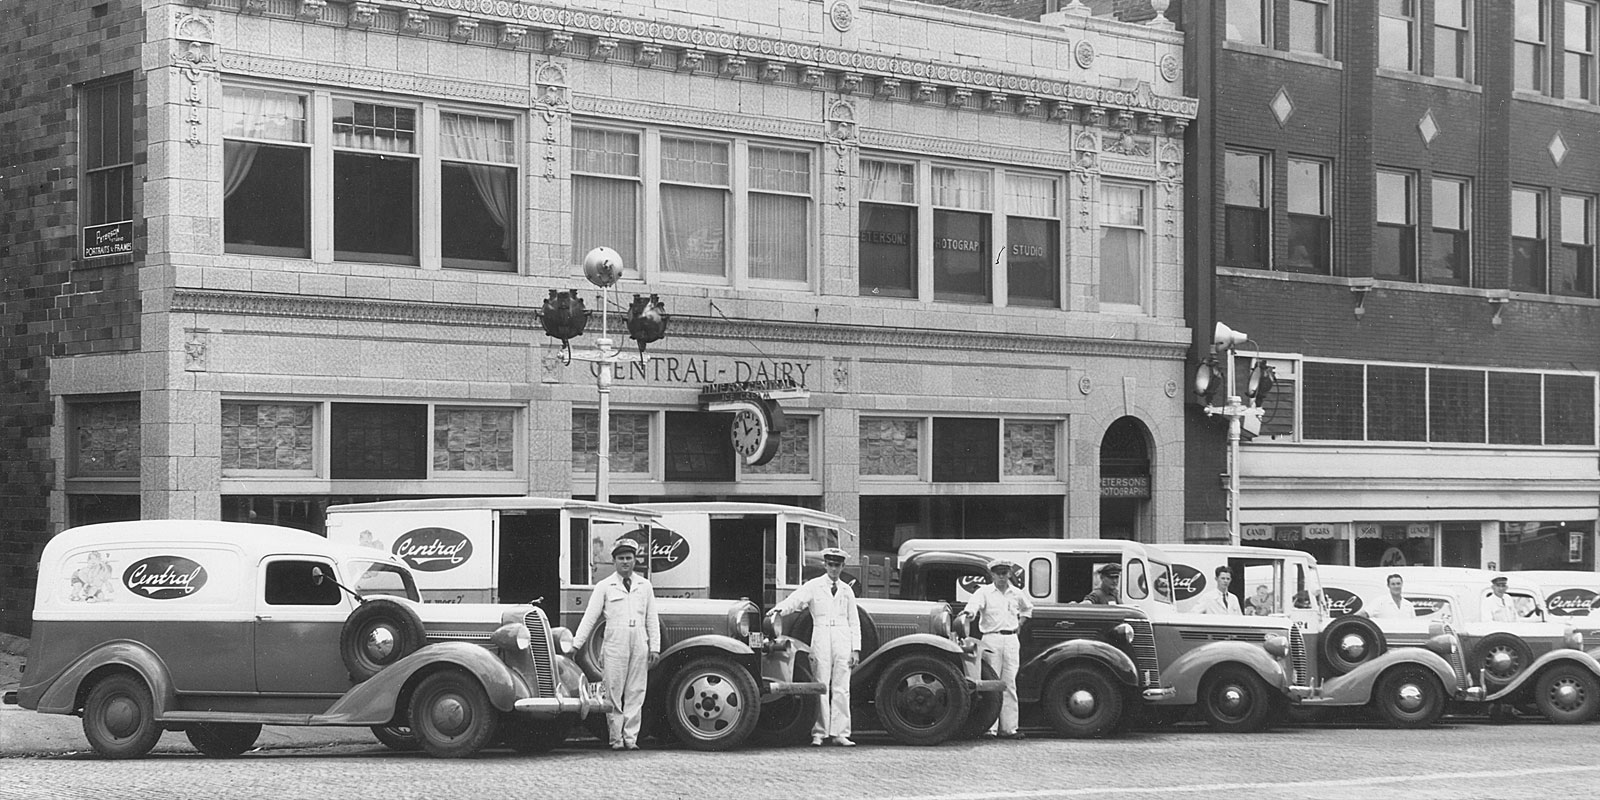 Central Dairy circa 1950. Photo from the Missouri State Historical Society